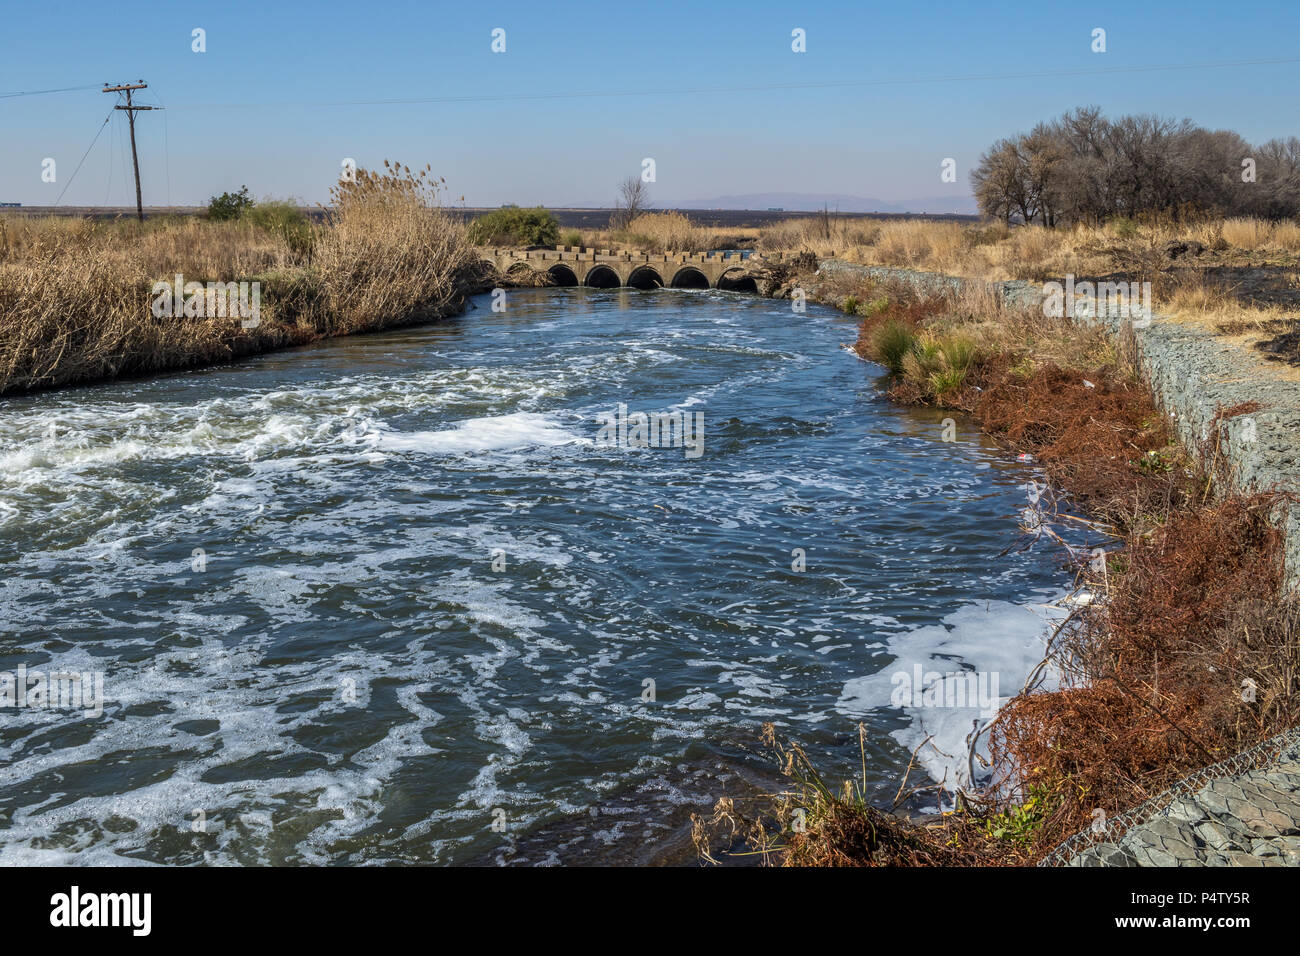 Old concrete low water bridge with a modern gabion retaining wall to control erosion image with copy space in landscape format - Stock Image